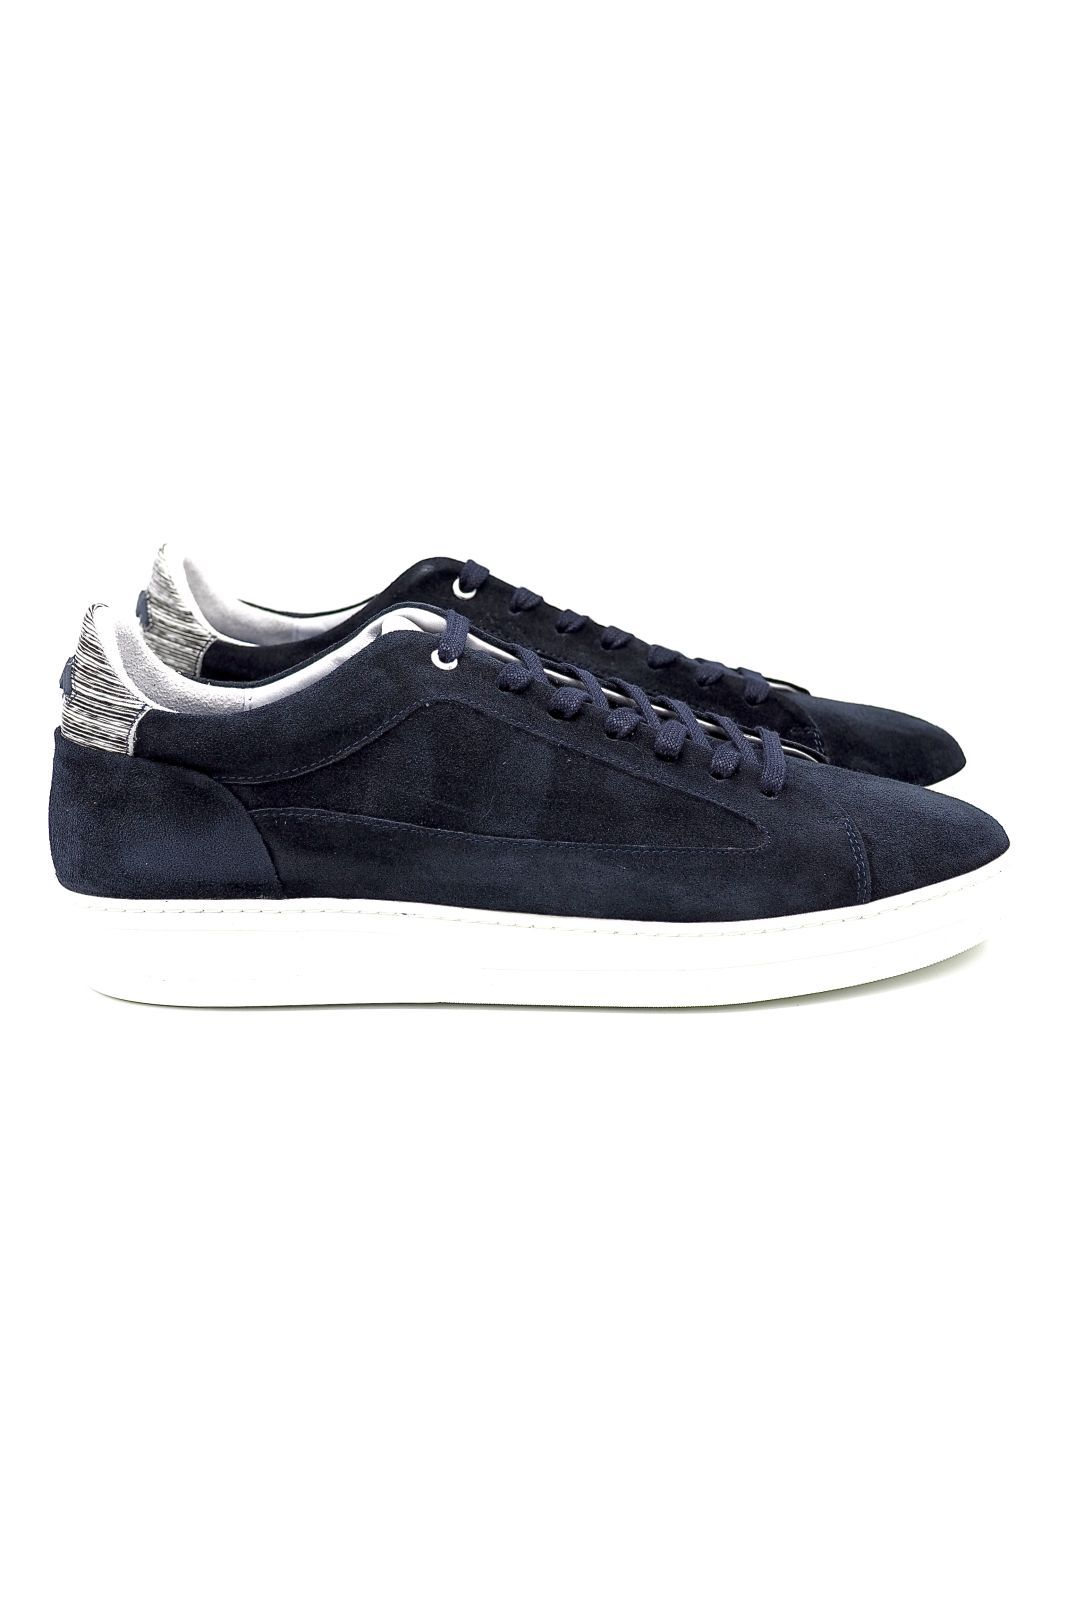 Floris Van Bommel basket bas Bleu hommes (FVB-Sneaker sem bloc - 13265/04 Nub. bleu) - Marine | Much more than shoes